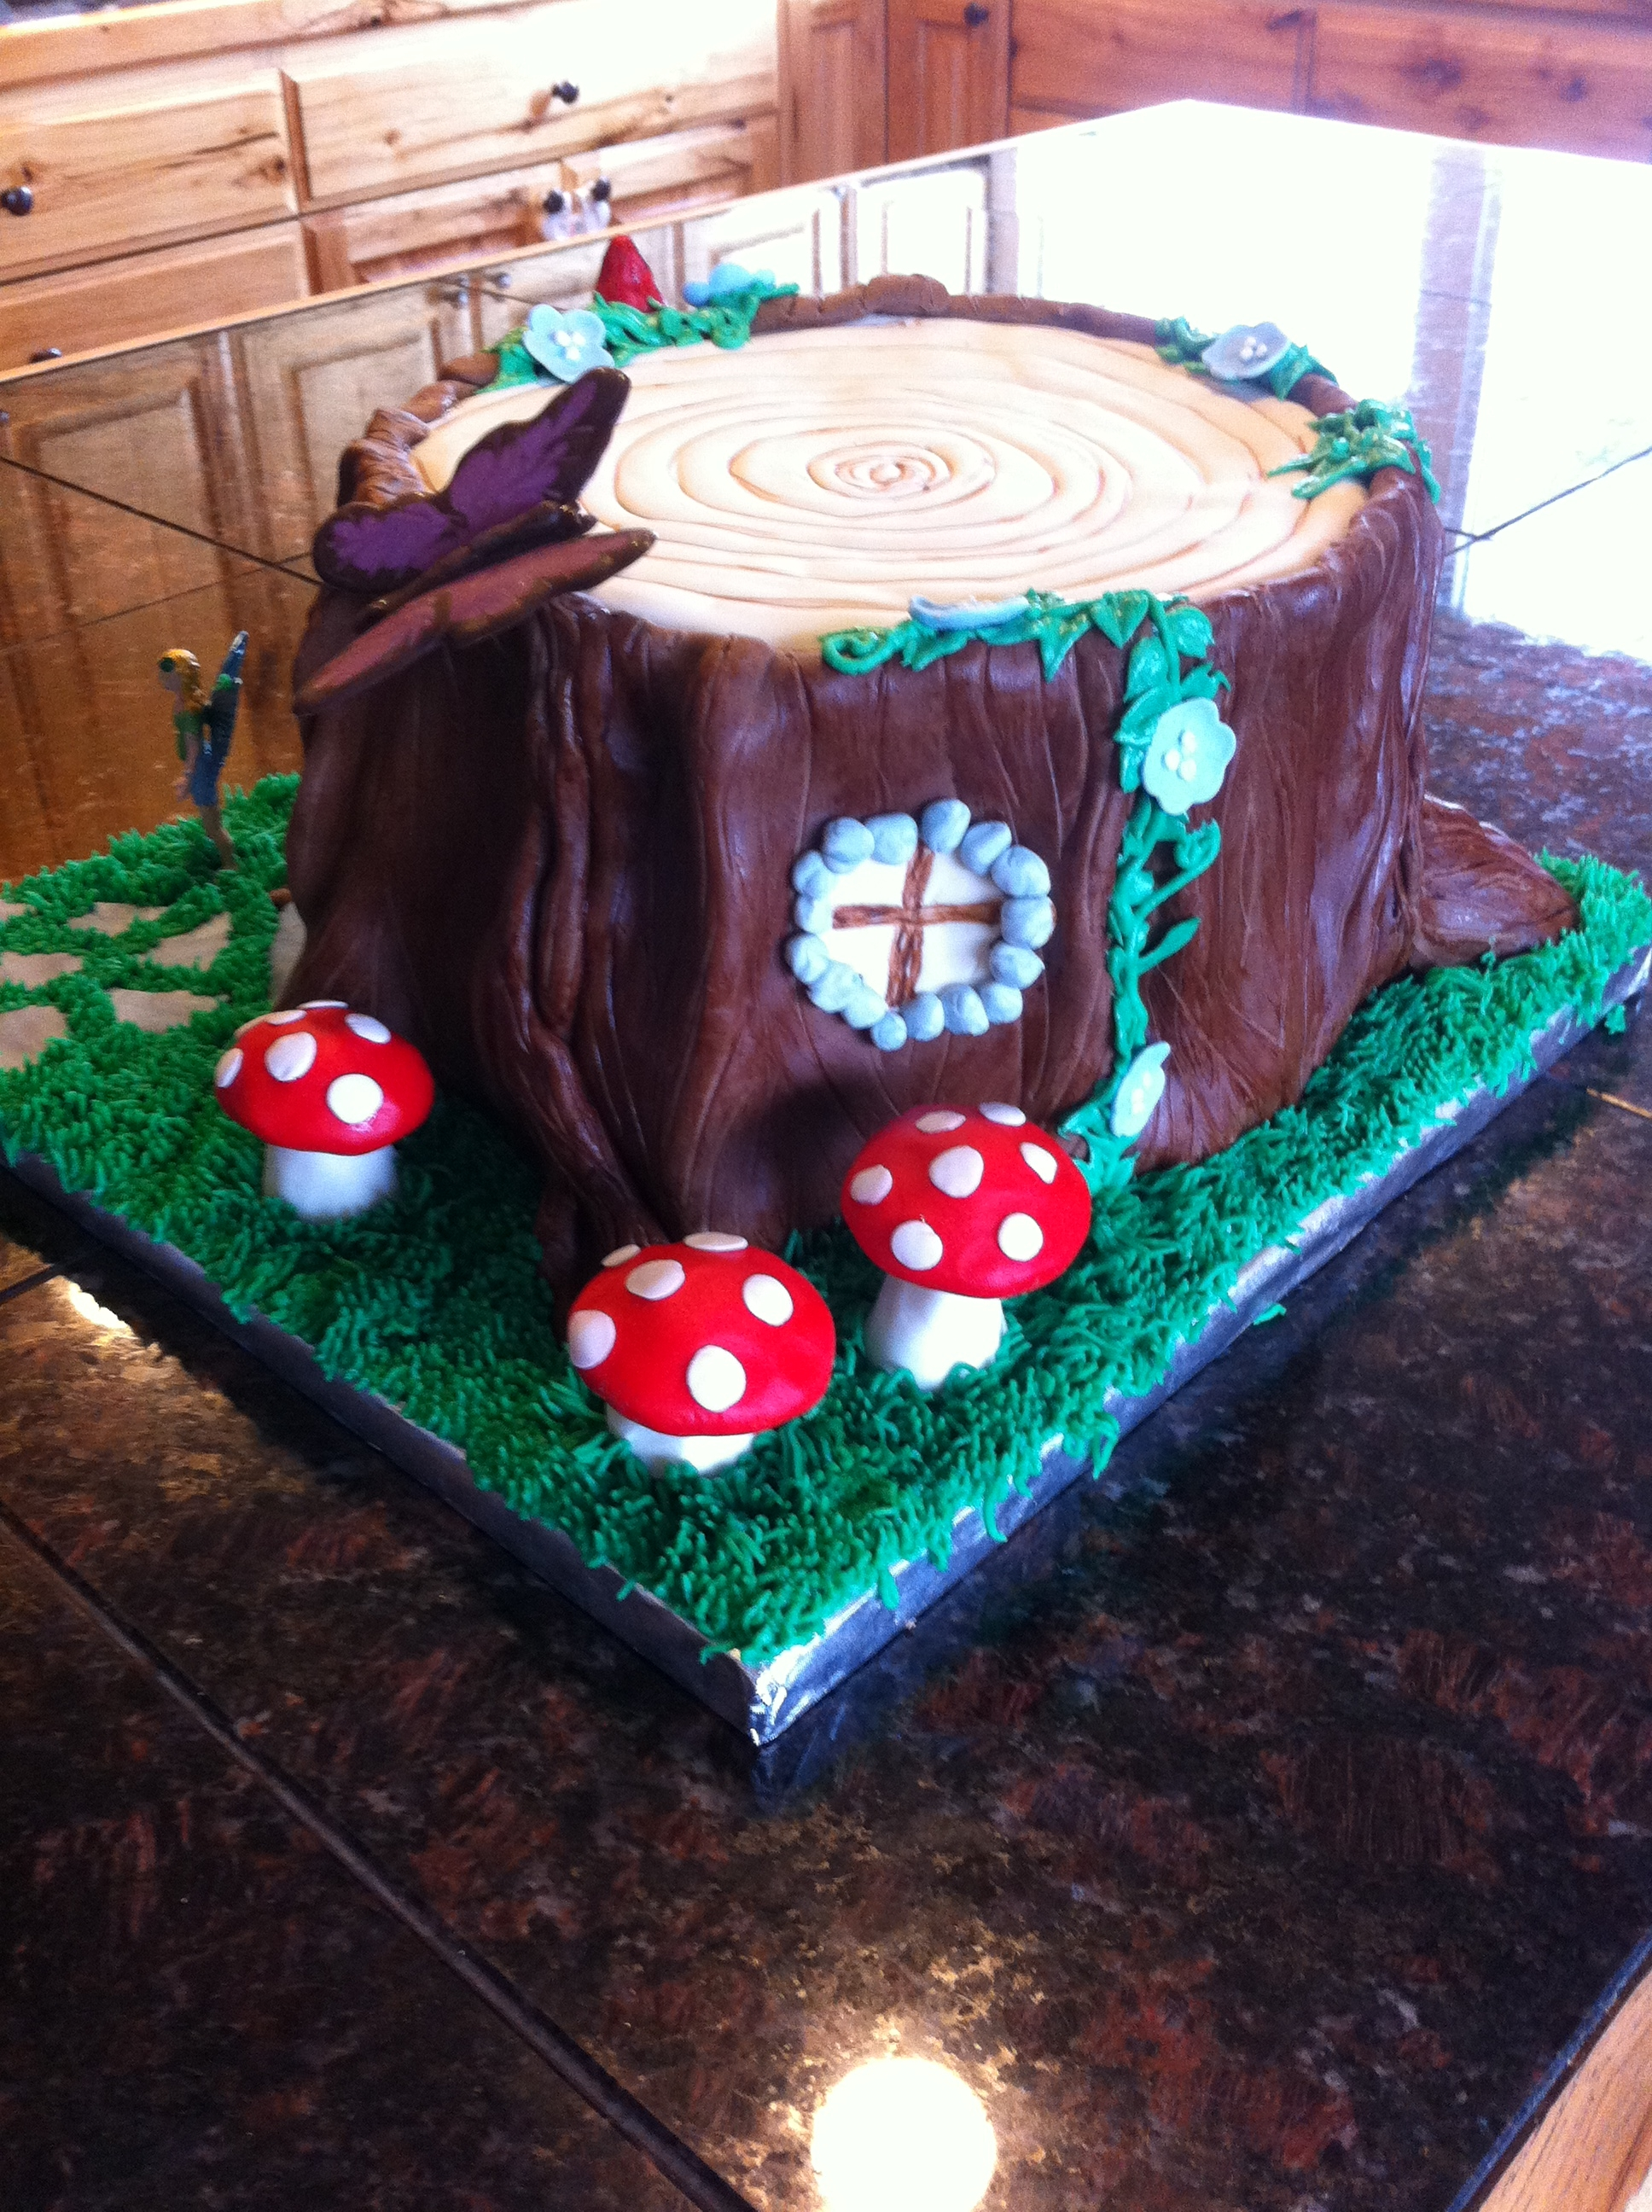 Cake Decorating Vines : Tree Stump Fairy House For A Little Girl Fondant Buttercream Grass And Vines Chocolate Butterfly ...